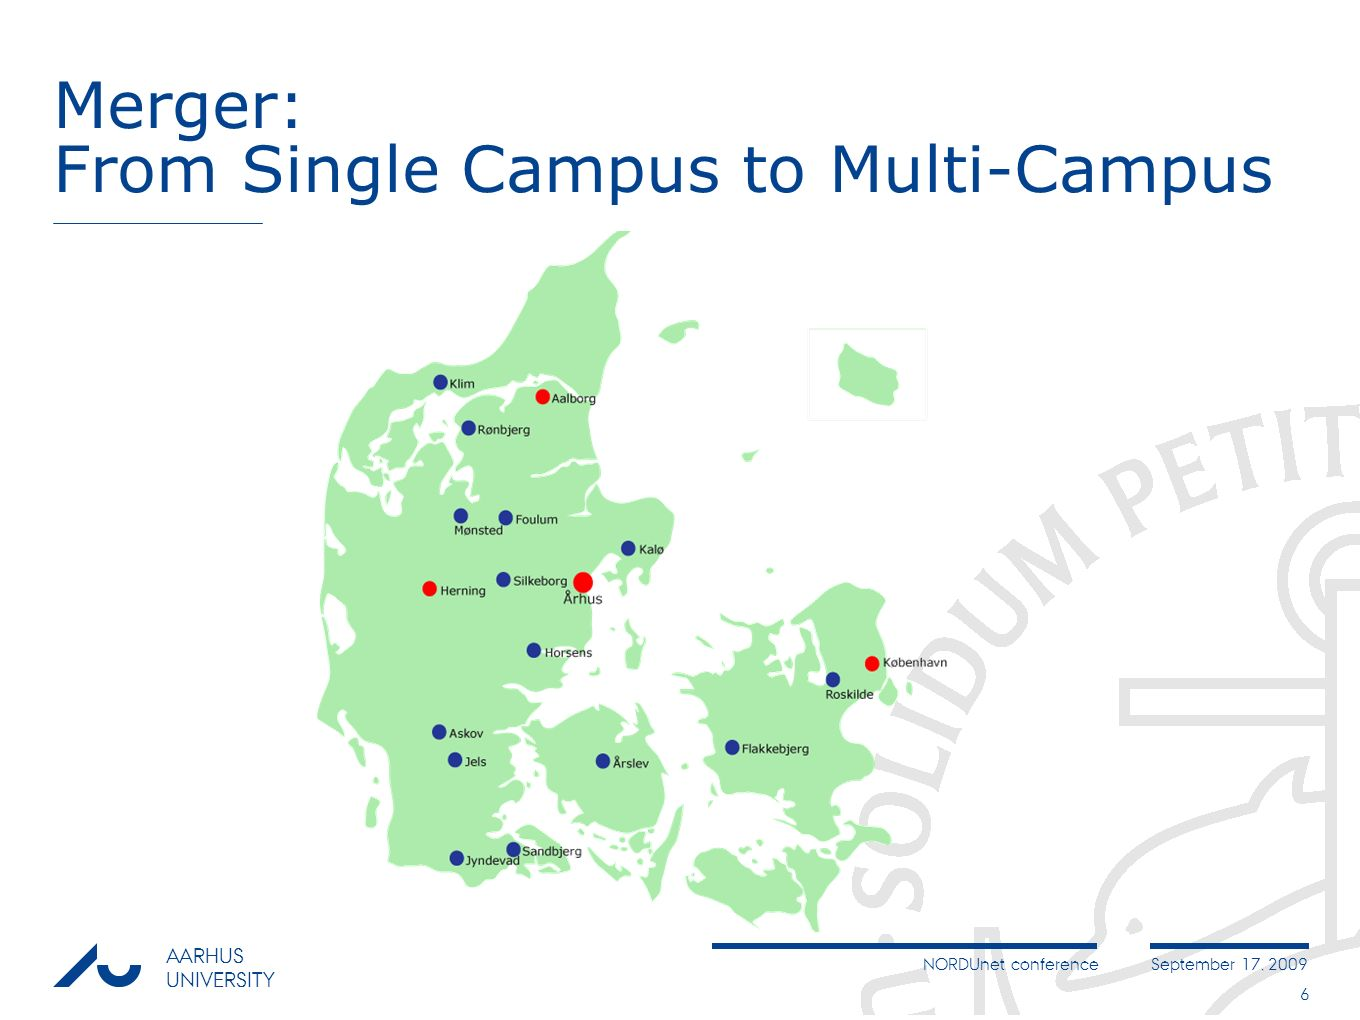 NORDUnet conferenceSeptember 17, 2009 AARHUS UNIVERSITY 6 Merger: From Single Campus to Multi-Campus